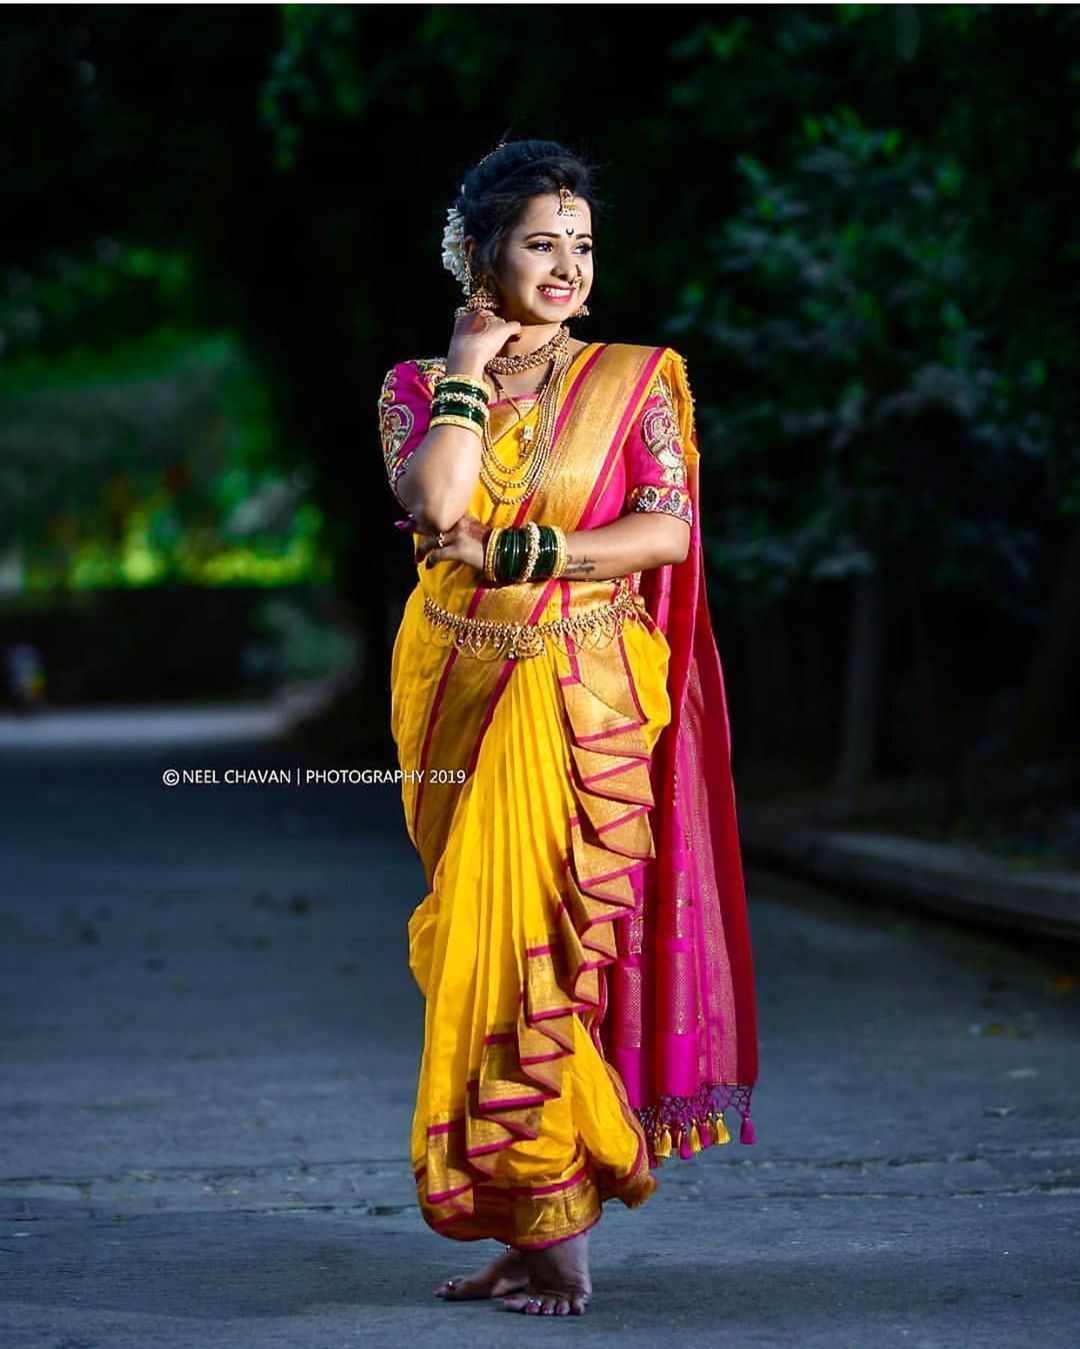 7 Blouse Designs Which Will Leave You Mesmerized Saree Wearing Styles Wedding Saree Blouse Designs Saree Wearing This saree is full yellow and is a typical maharashtrian nauvari saree, draped authentically as a marathi. wedding saree blouse designs